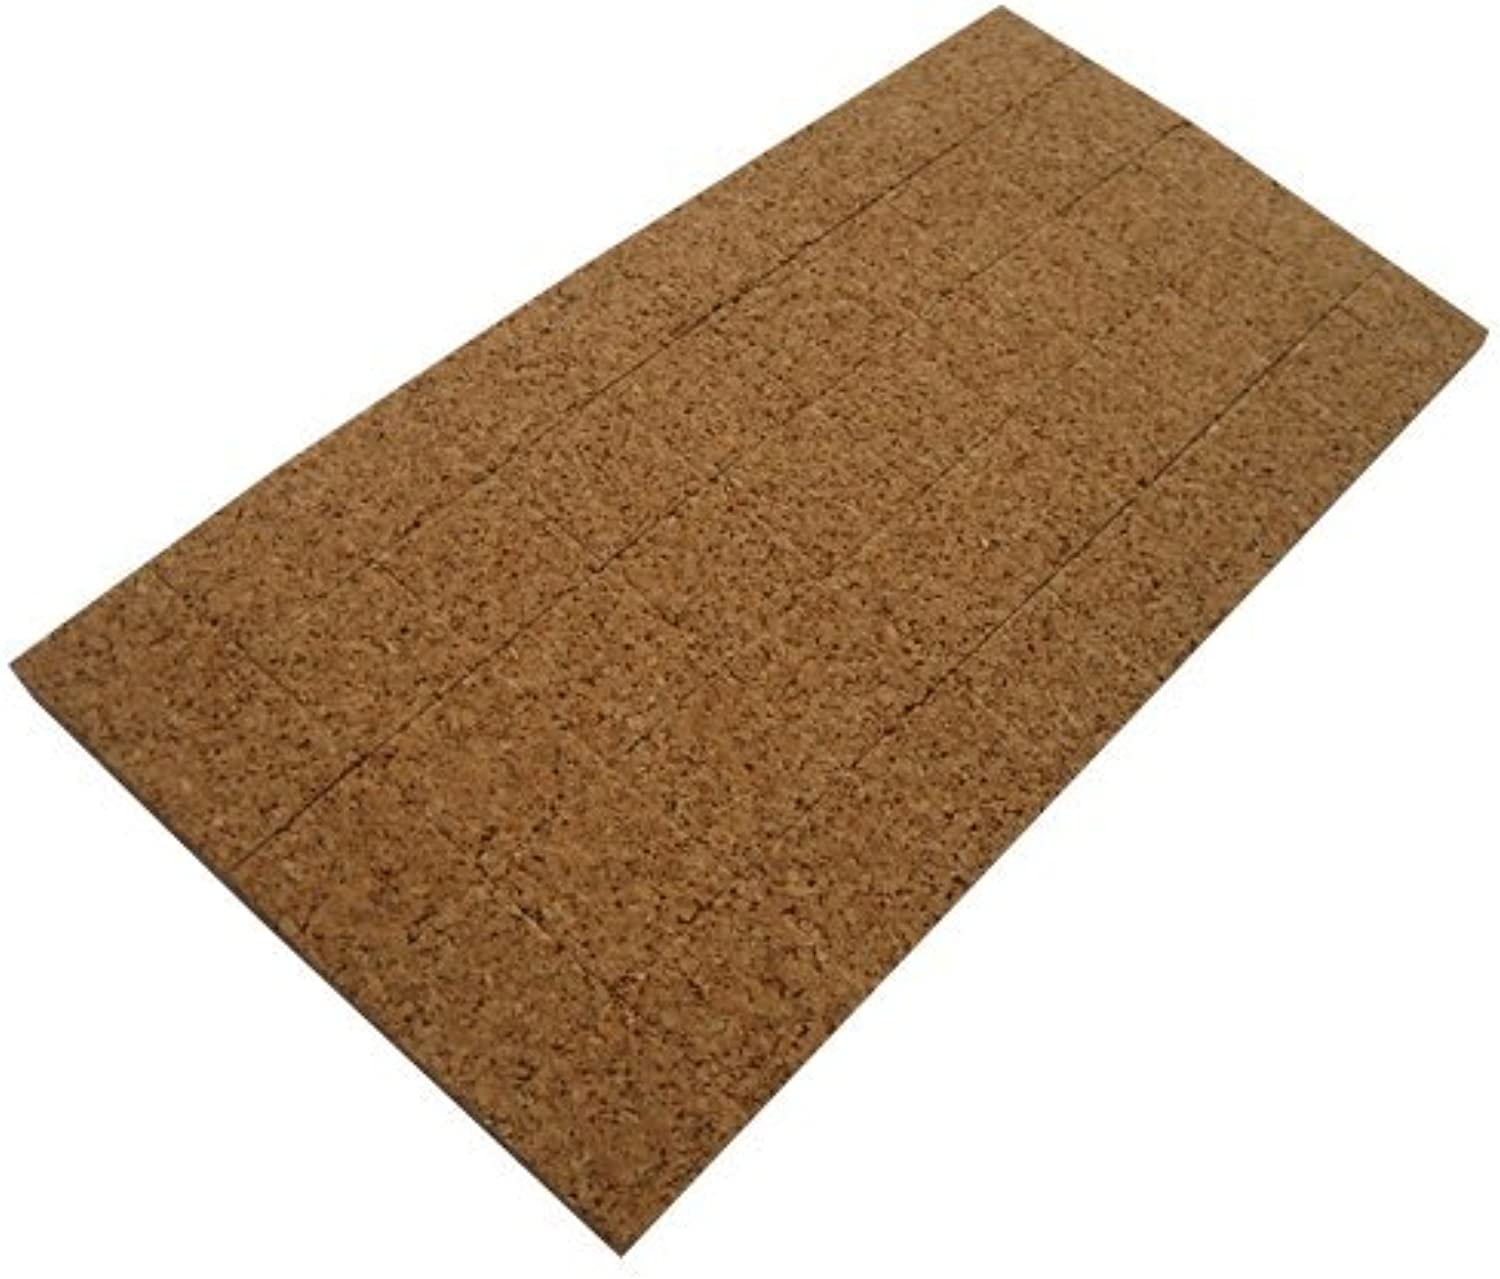 48 Pads Cork(1 16 ) And Cling Foam(1 16 ) - 1 8  Thick X 3 4  Long X 3 4  Wide X 50 Pieces